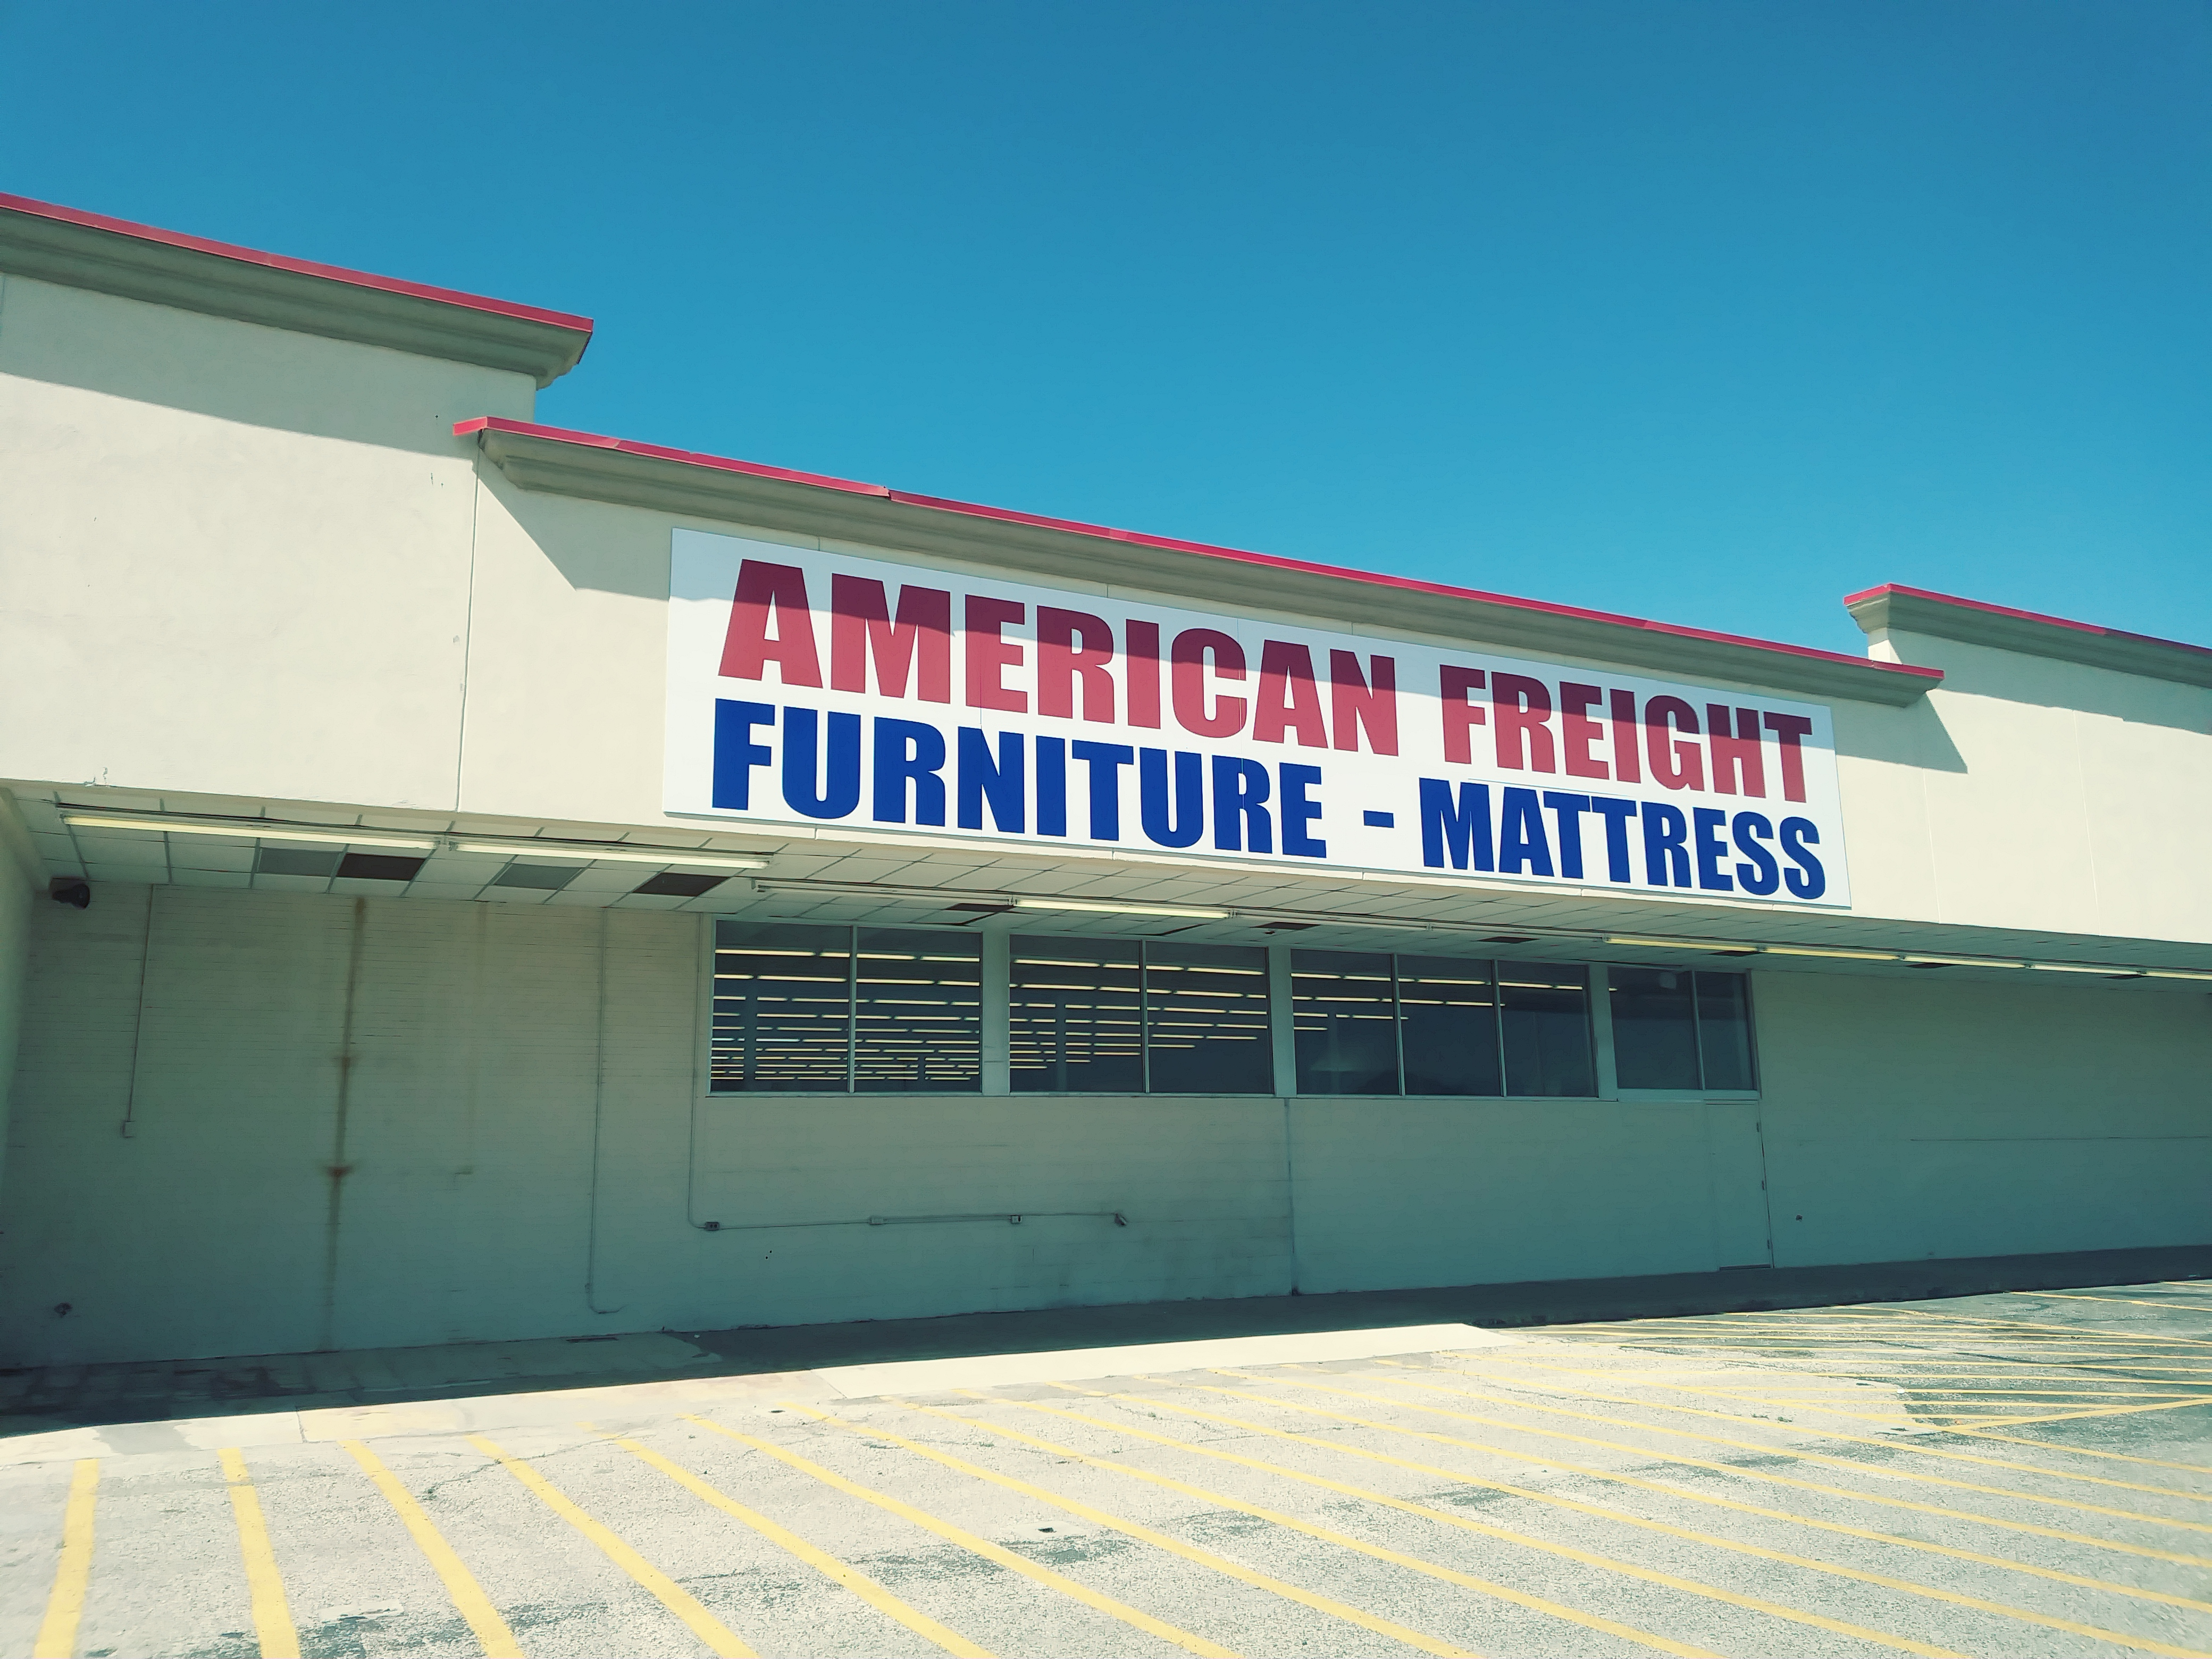 American Freight Furniture And Mattress 4426 34th St Ste B, Lubbock, TX  79410   YP.com